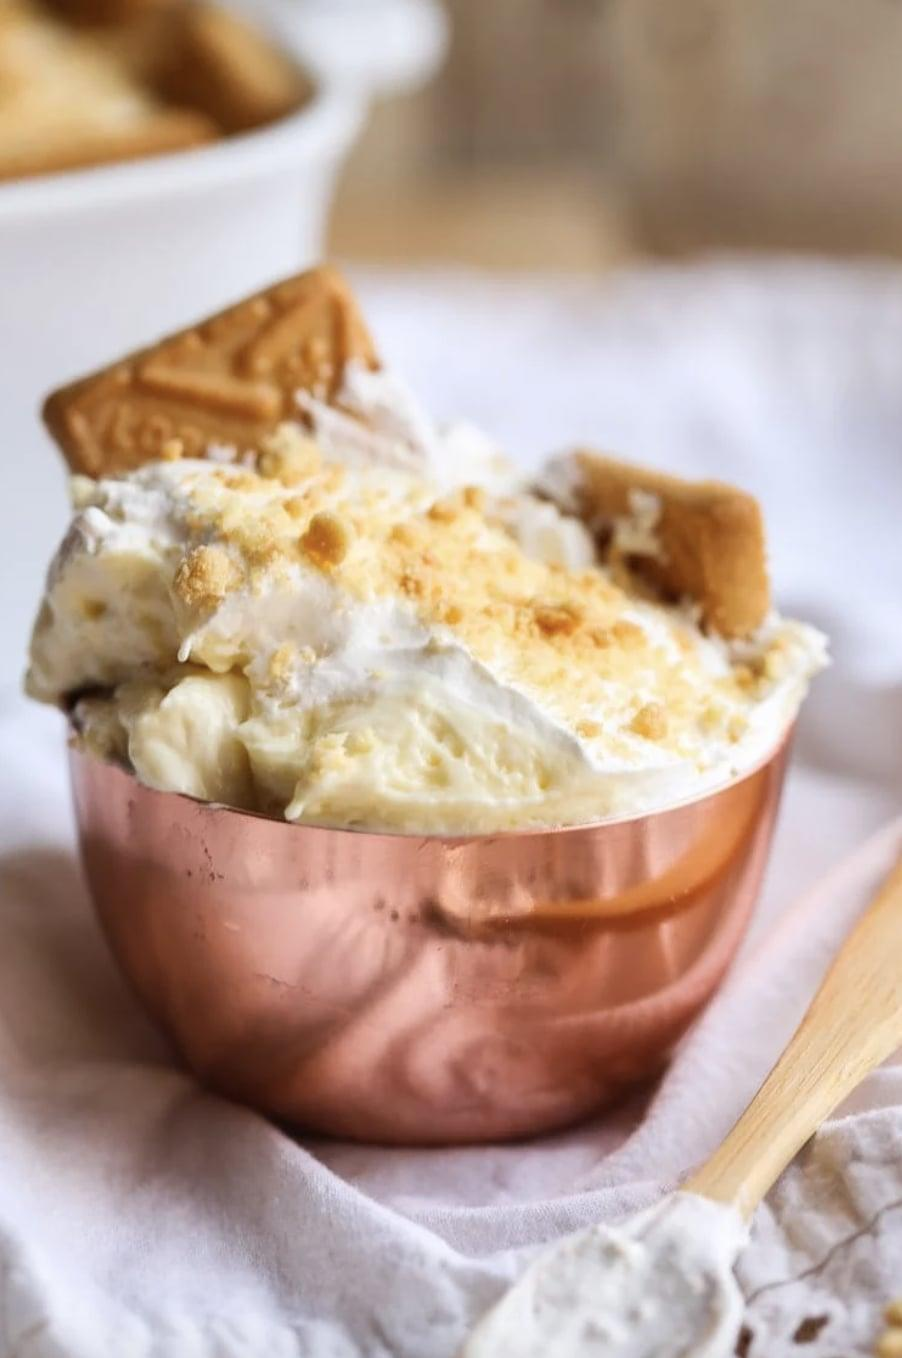 "<p>Creamy, rich, and oh-so good, this banana pudding recipe is the one you've always wanted. Serve it in individual ramekins or in a trifle dish. Yum! </p> <p><strong>Get the recipe</strong>: <a href=""https://cookiesandcups.com/best-banana-pudding/"" class=""link rapid-noclick-resp"" rel=""nofollow noopener"" target=""_blank"" data-ylk=""slk:banana pudding"">banana pudding</a></p>"